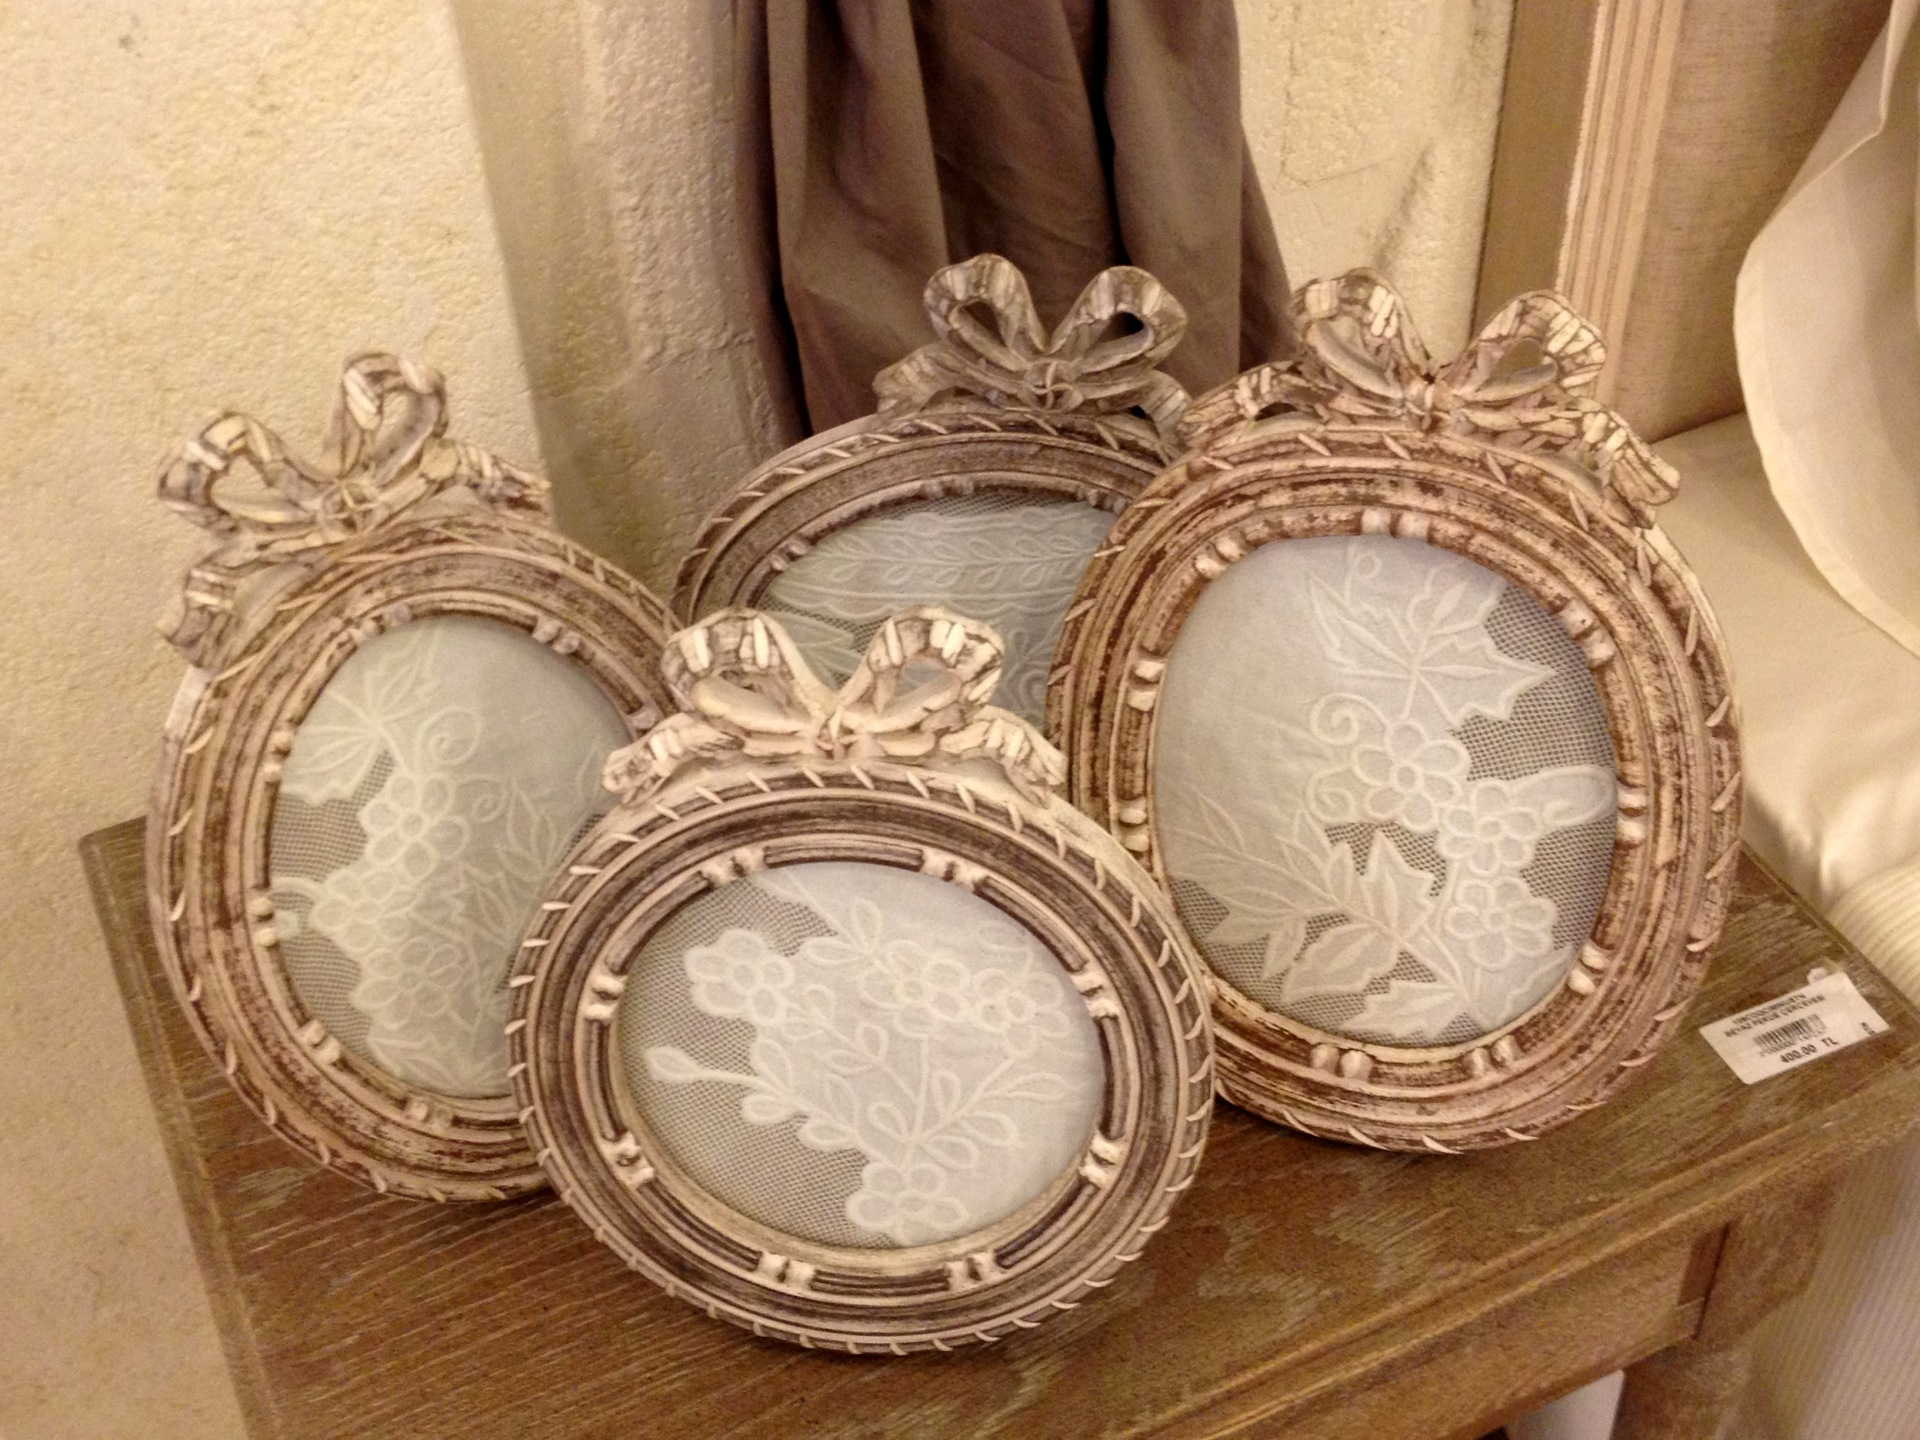 framed lace pieces